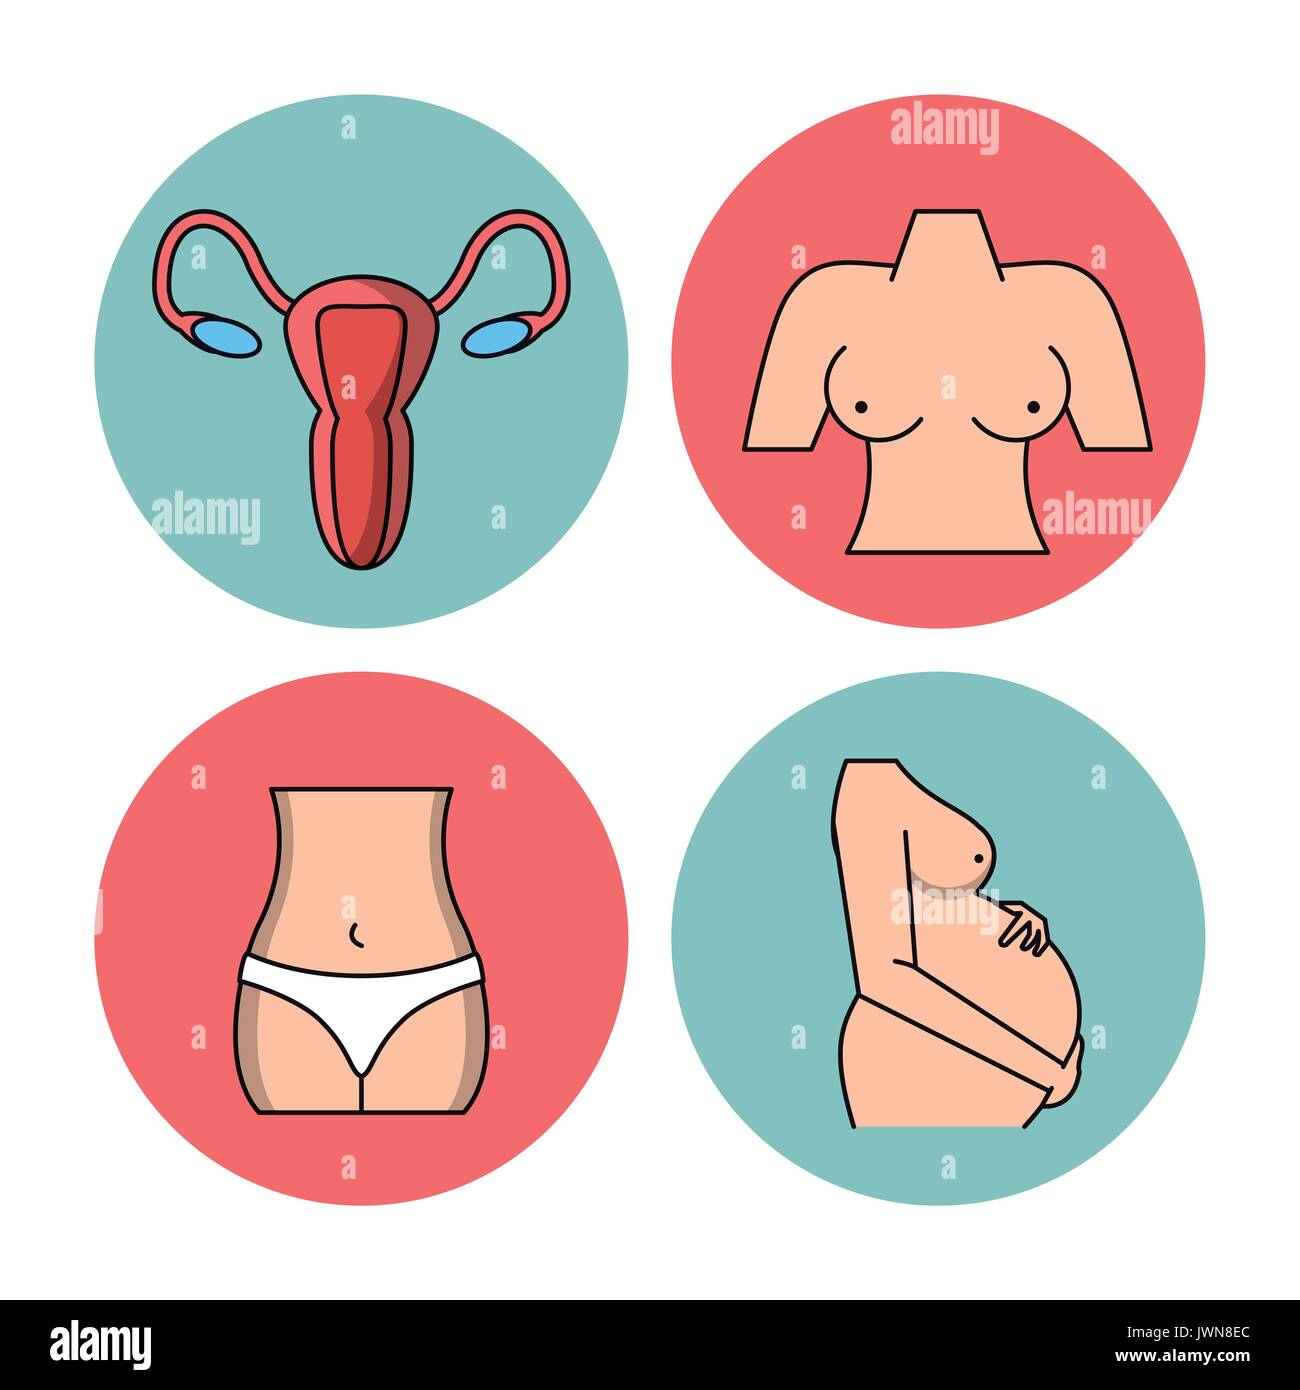 white background with circular frames of female body parts - Stock Image